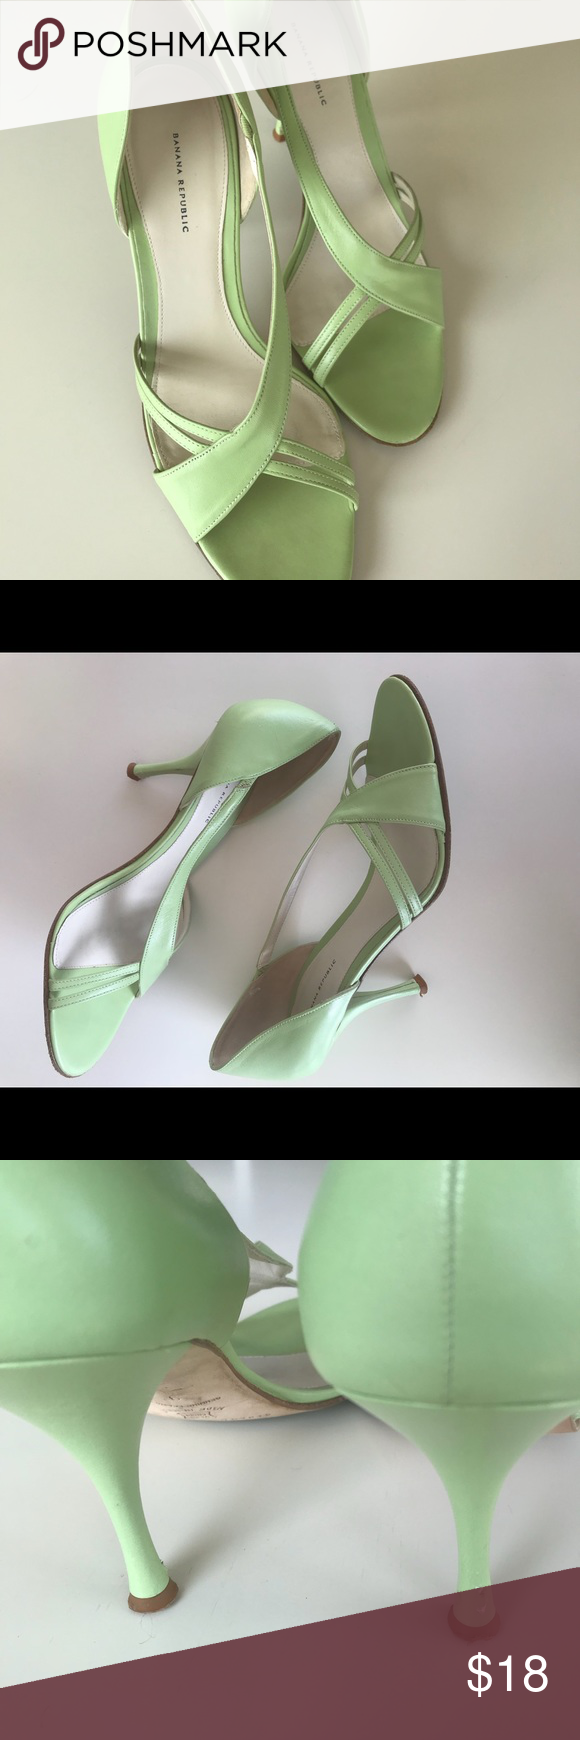 68ca7ff4c7 Banana Republic Leather Mint Green Heels Made in Italy, Banana Republic  Leather Heels.Such